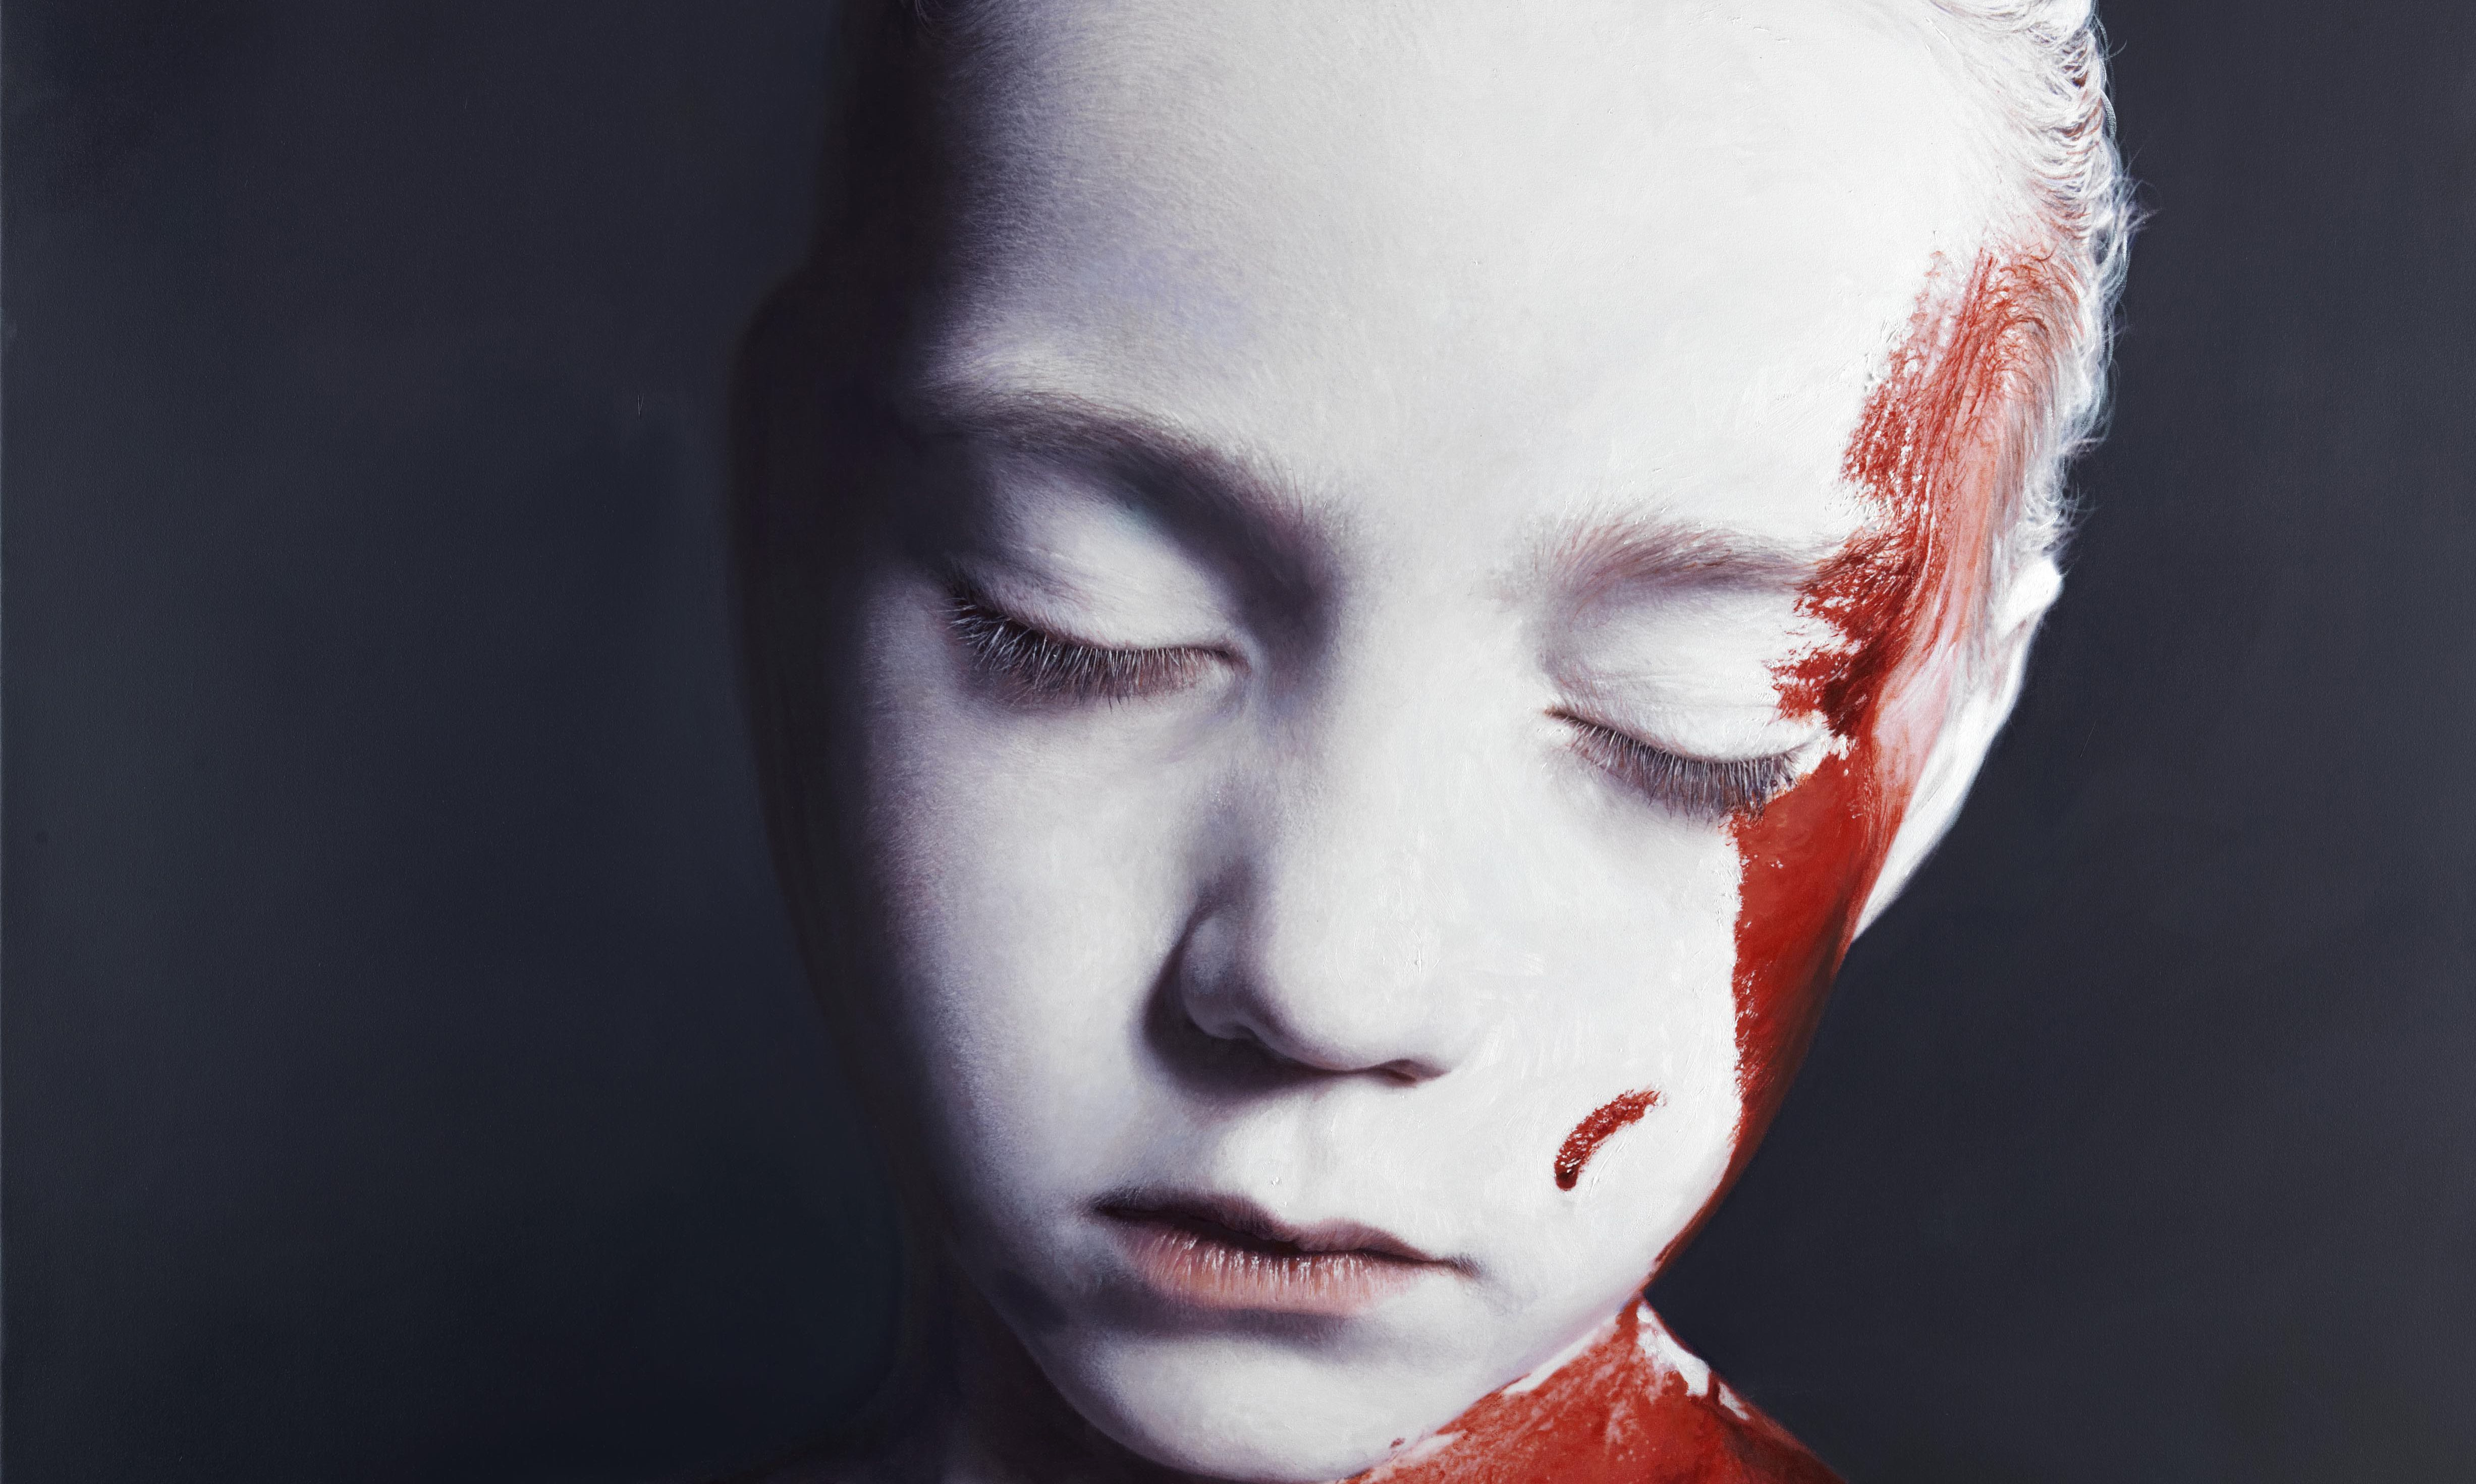 Gottfried Helnwein The wounded child